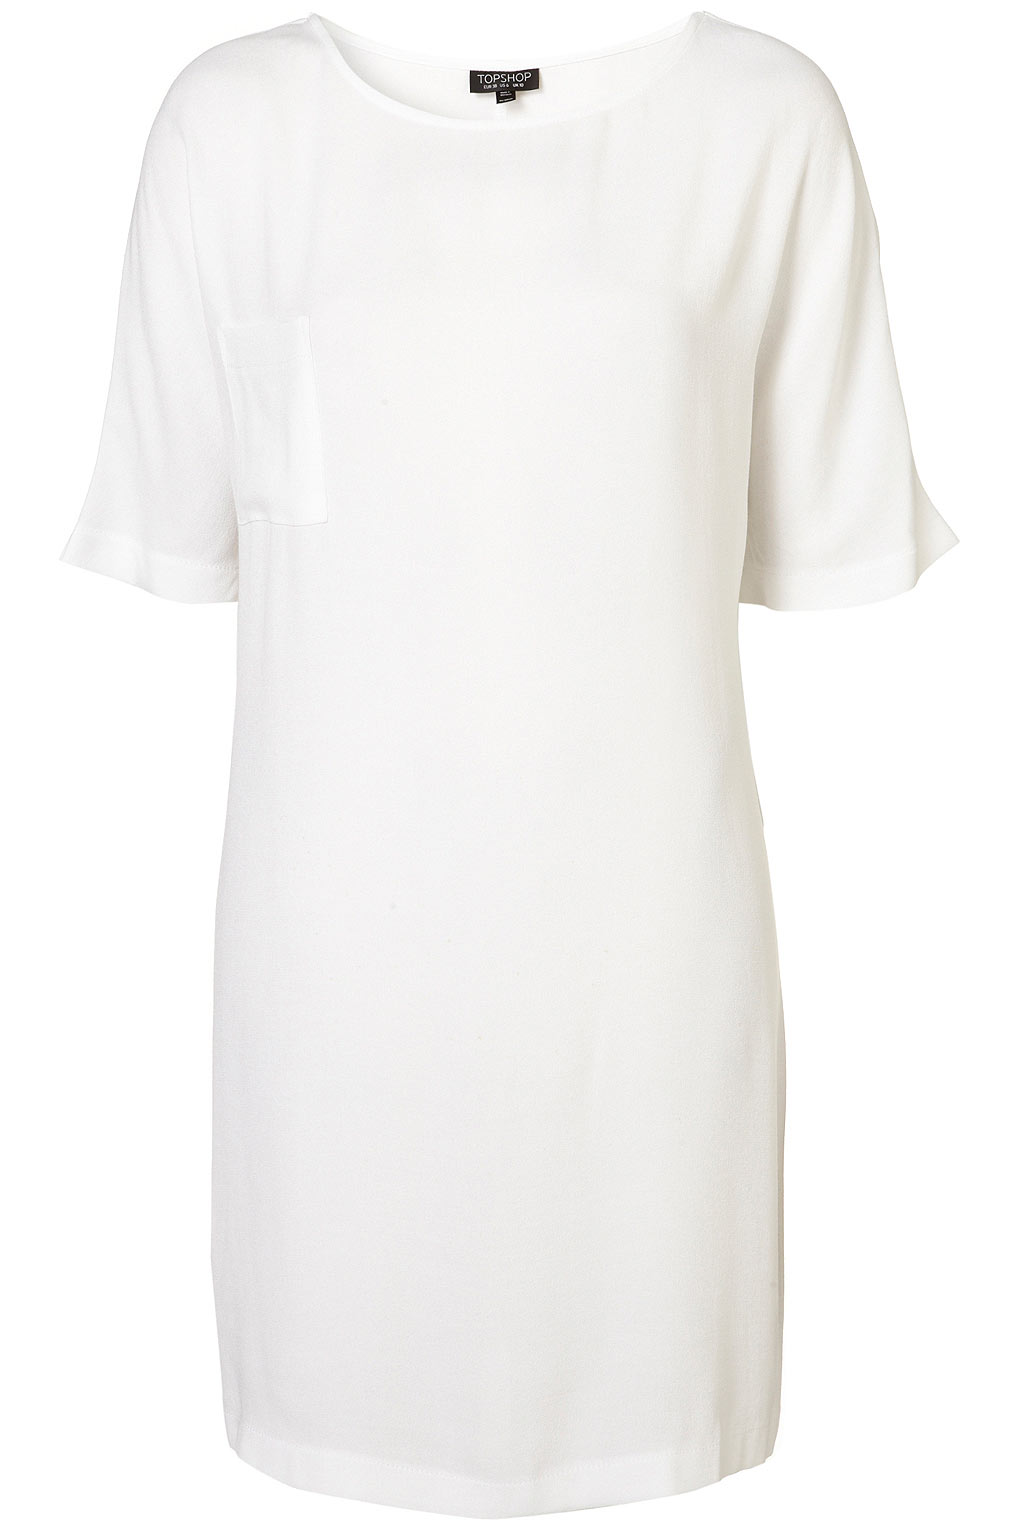 Topshop clean t shirt dress in white lyst for How to clean white dress shirts